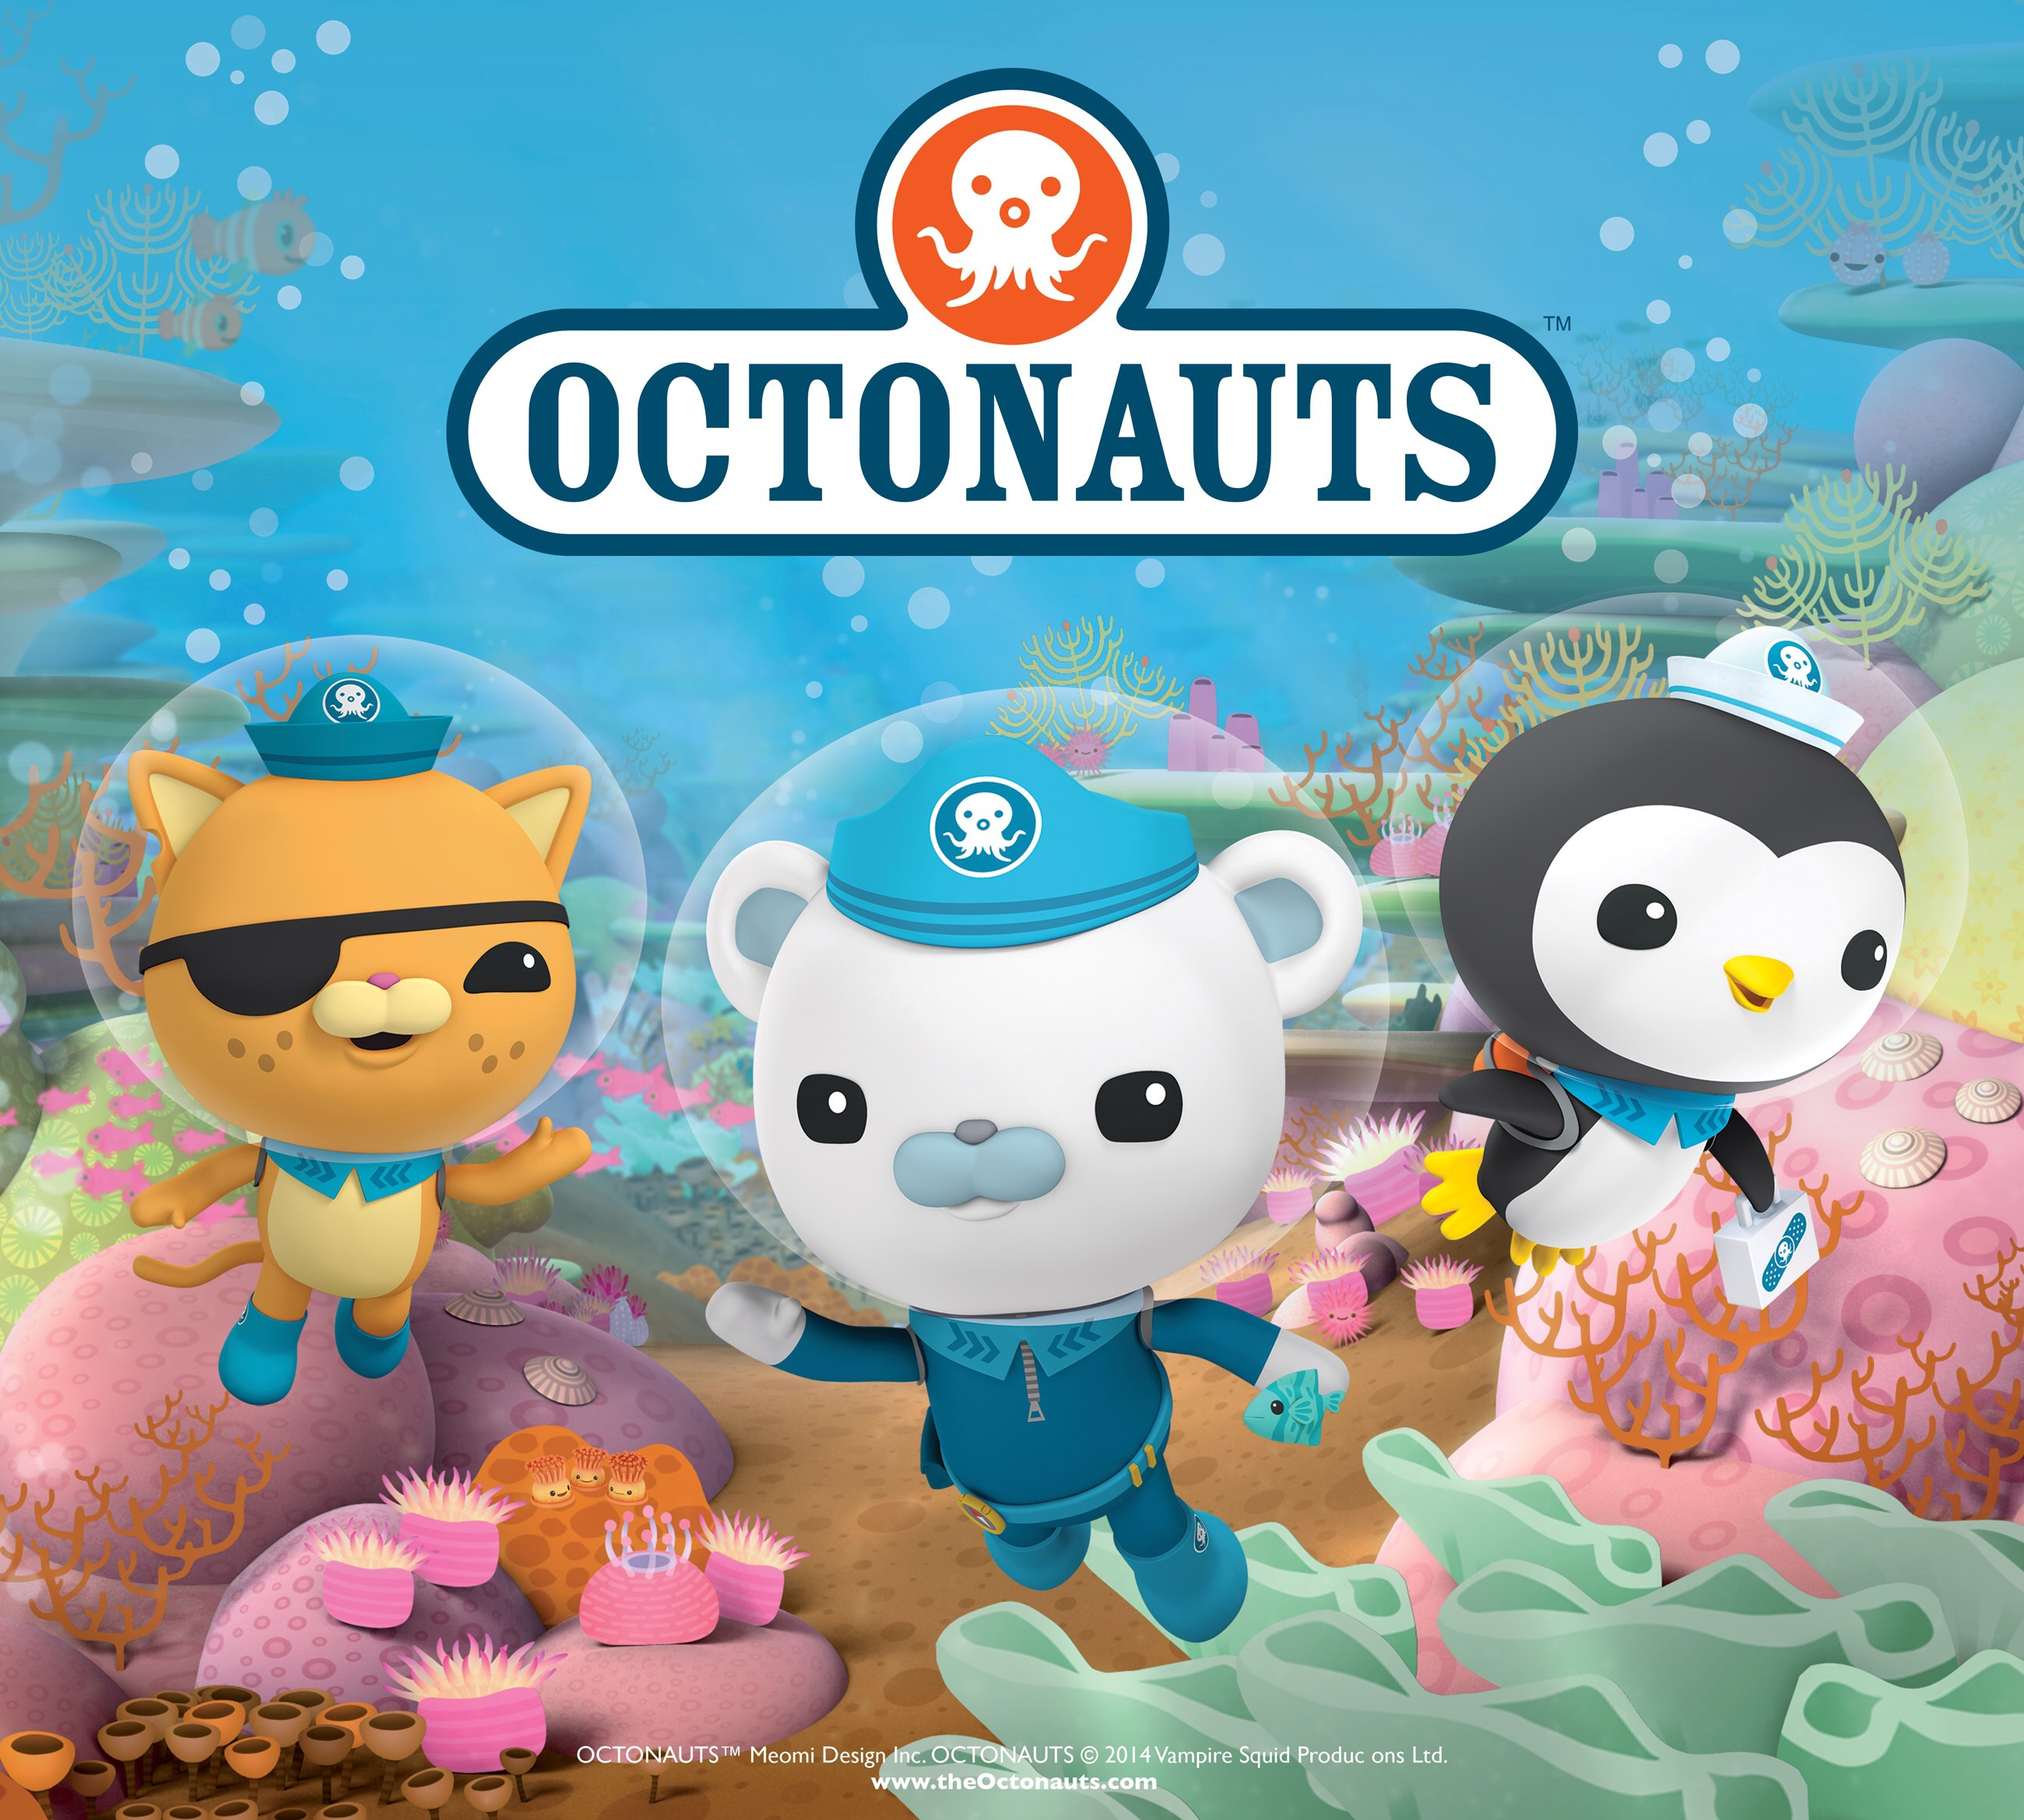 Meet the Octonauts at SEA LIFE Melbourne Aquarium - Melbourne